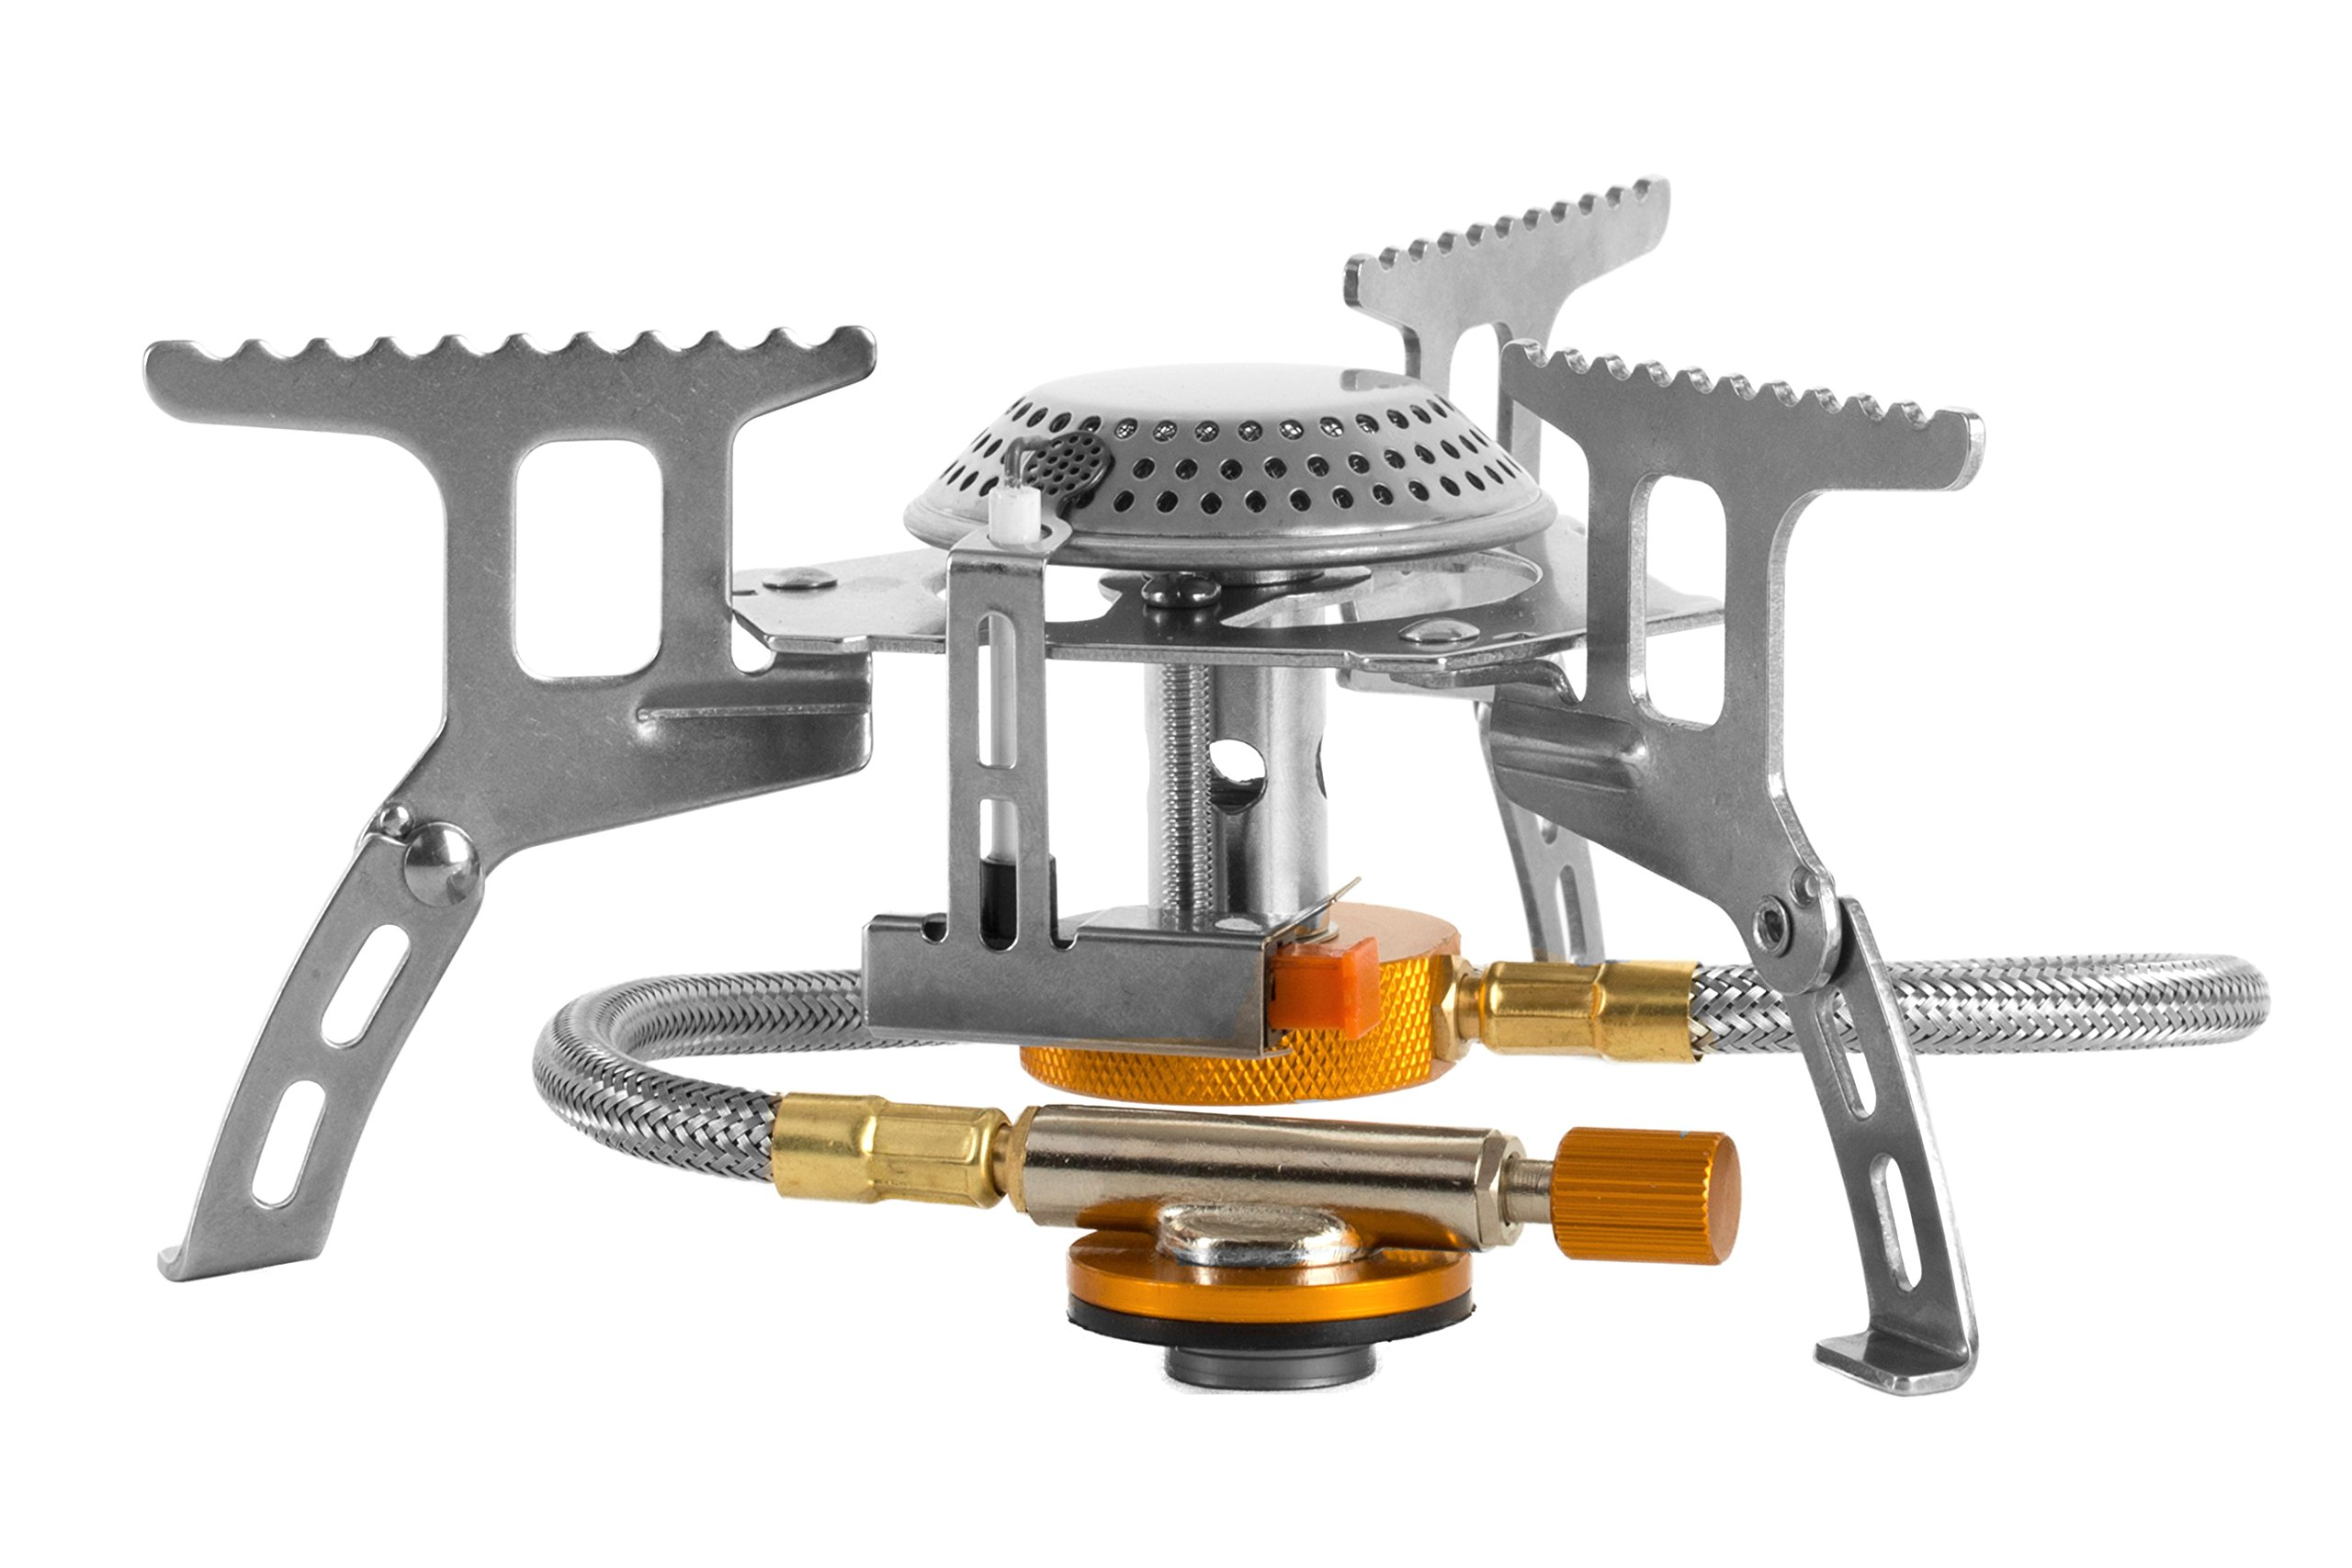 Ultralight Collapsible Camping Stove with Adjustable Windproof Flame and 3500W Ignition Spark - Includes Travel Case for Backpacking Picnics Sporting Mountaineering BBQ's Outdoor Festivities by Wealers